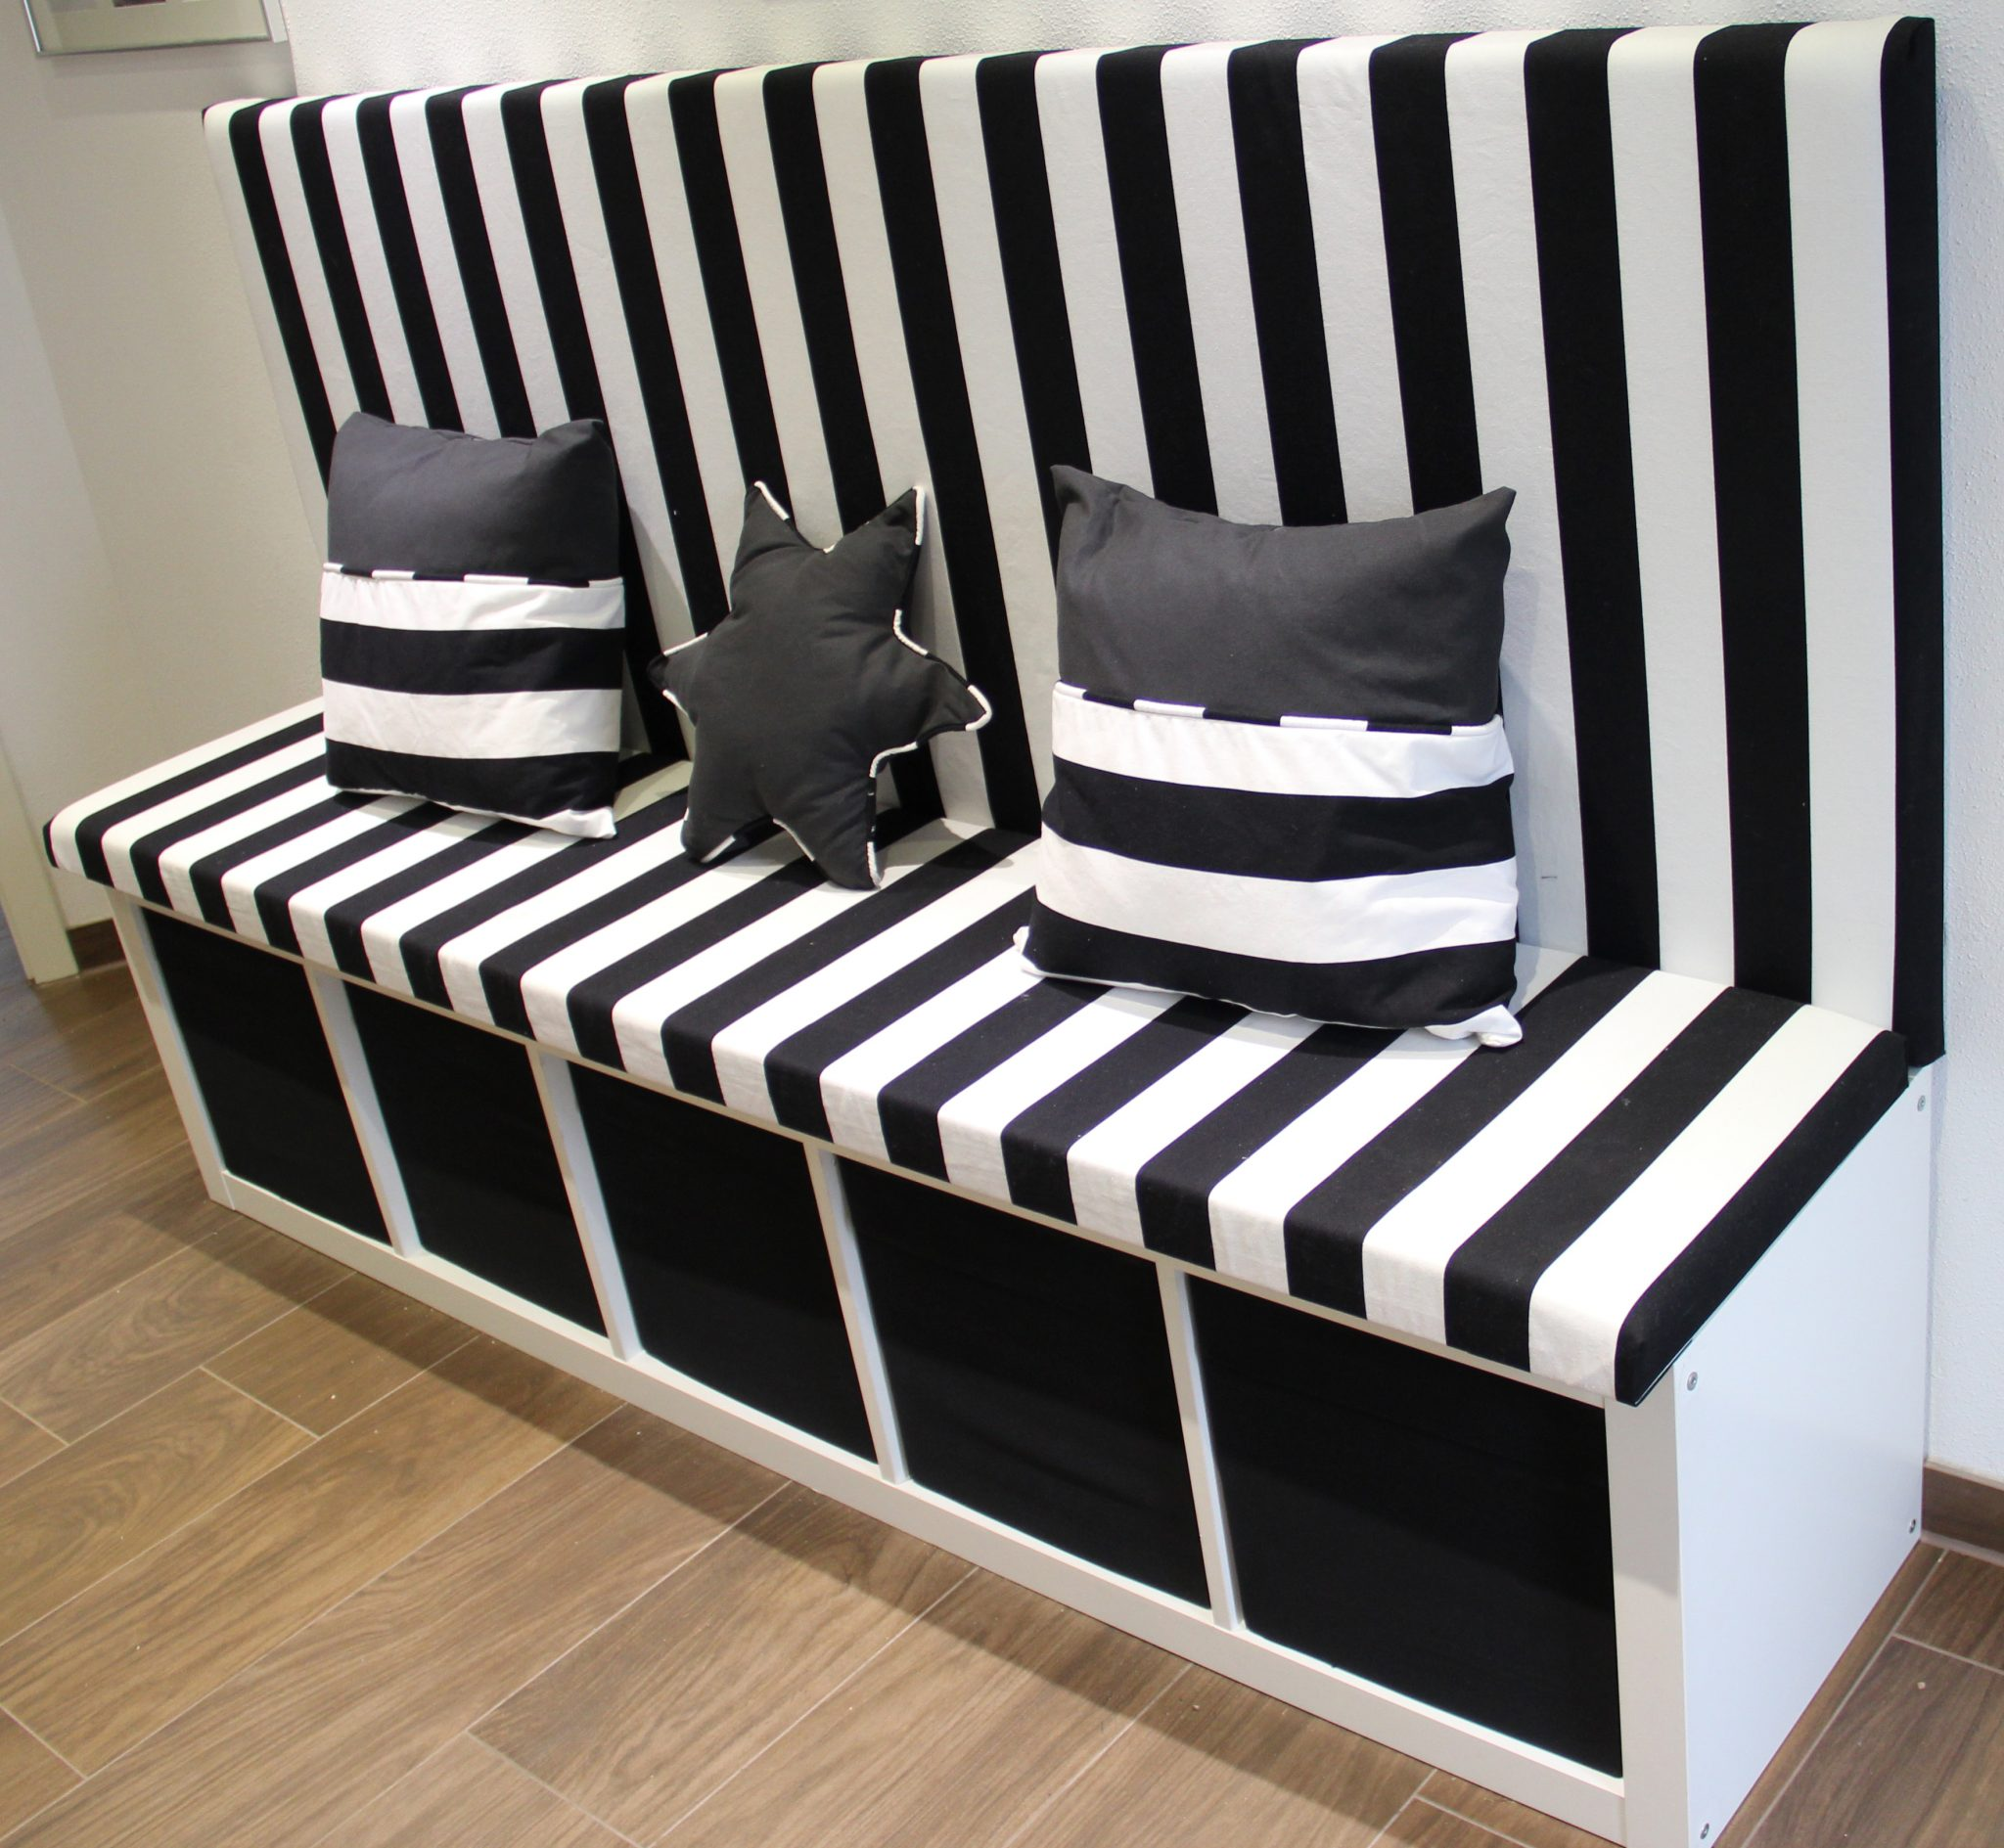 kallax ikea hack als bank rosadiy sch ne dinge machen. Black Bedroom Furniture Sets. Home Design Ideas